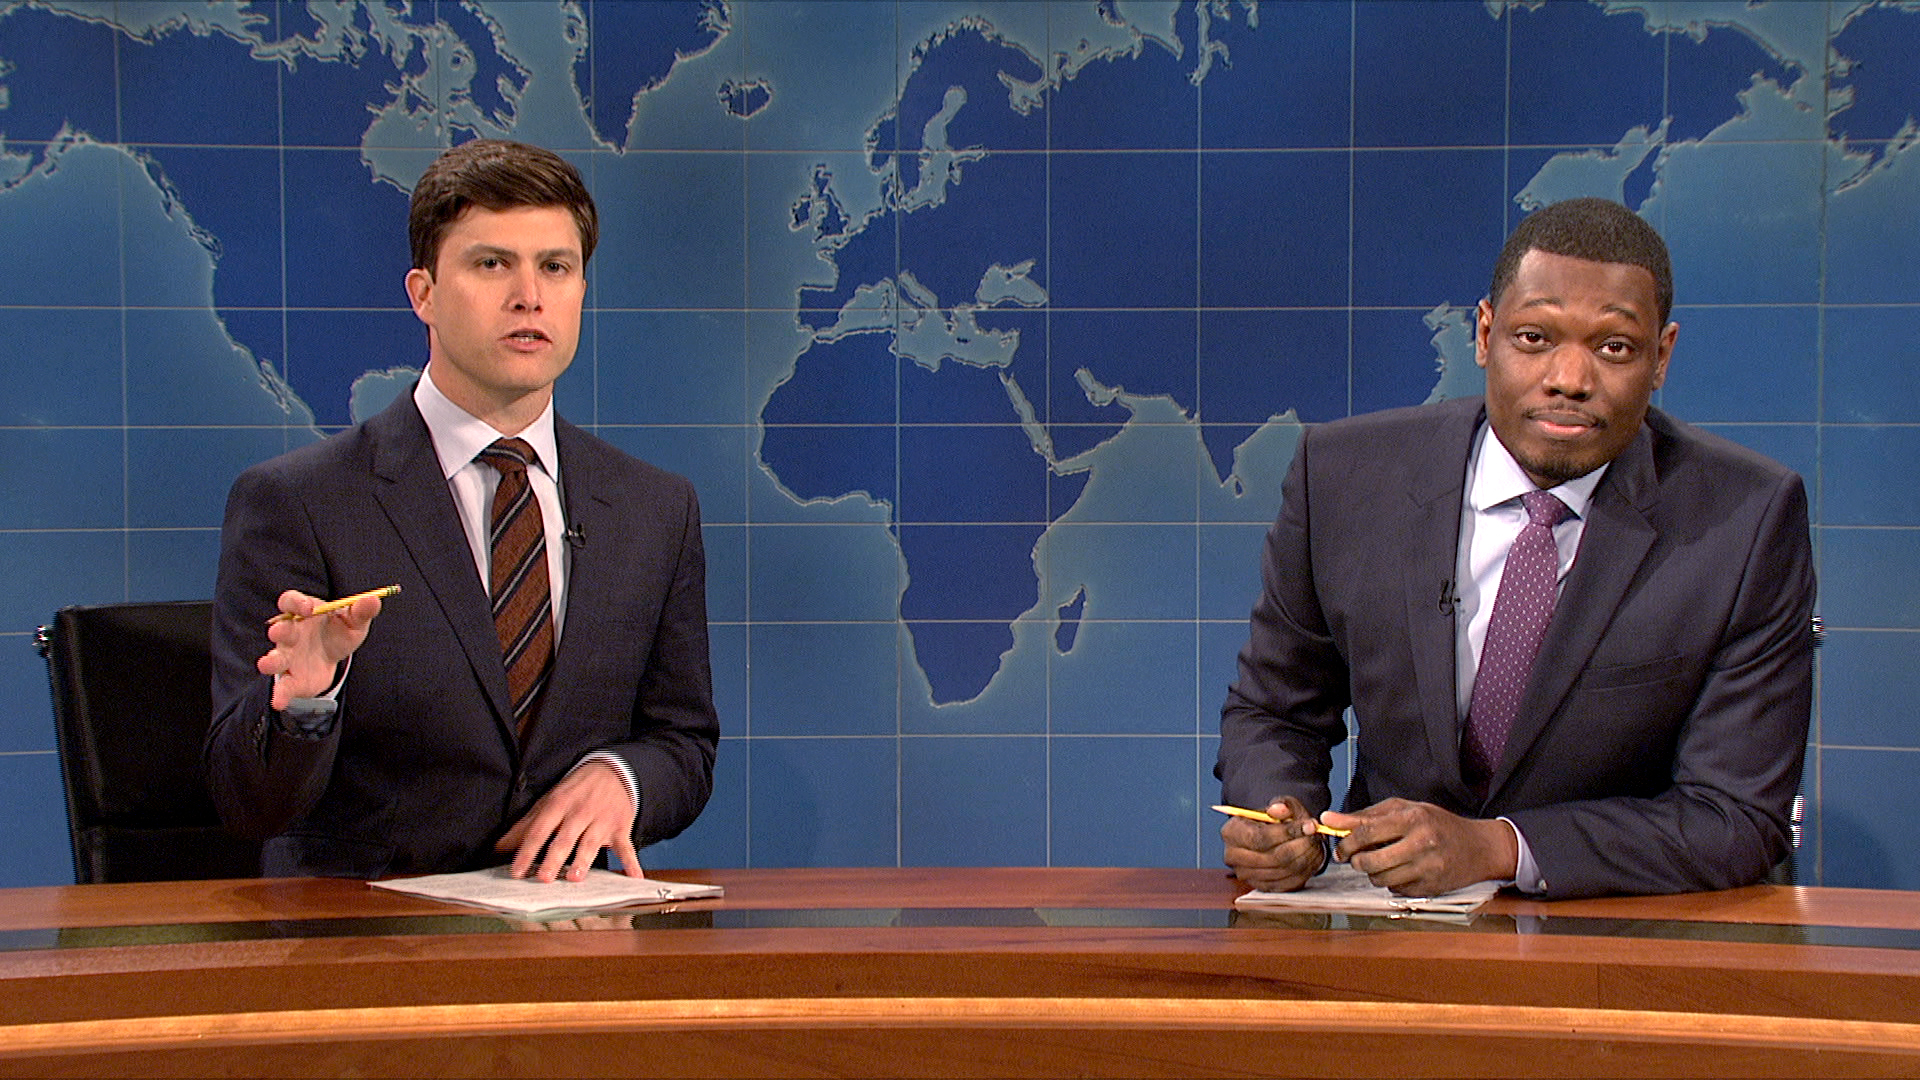 151011_2919746_Weekend_Update__Colin_Jost_and_Michael_Che_T